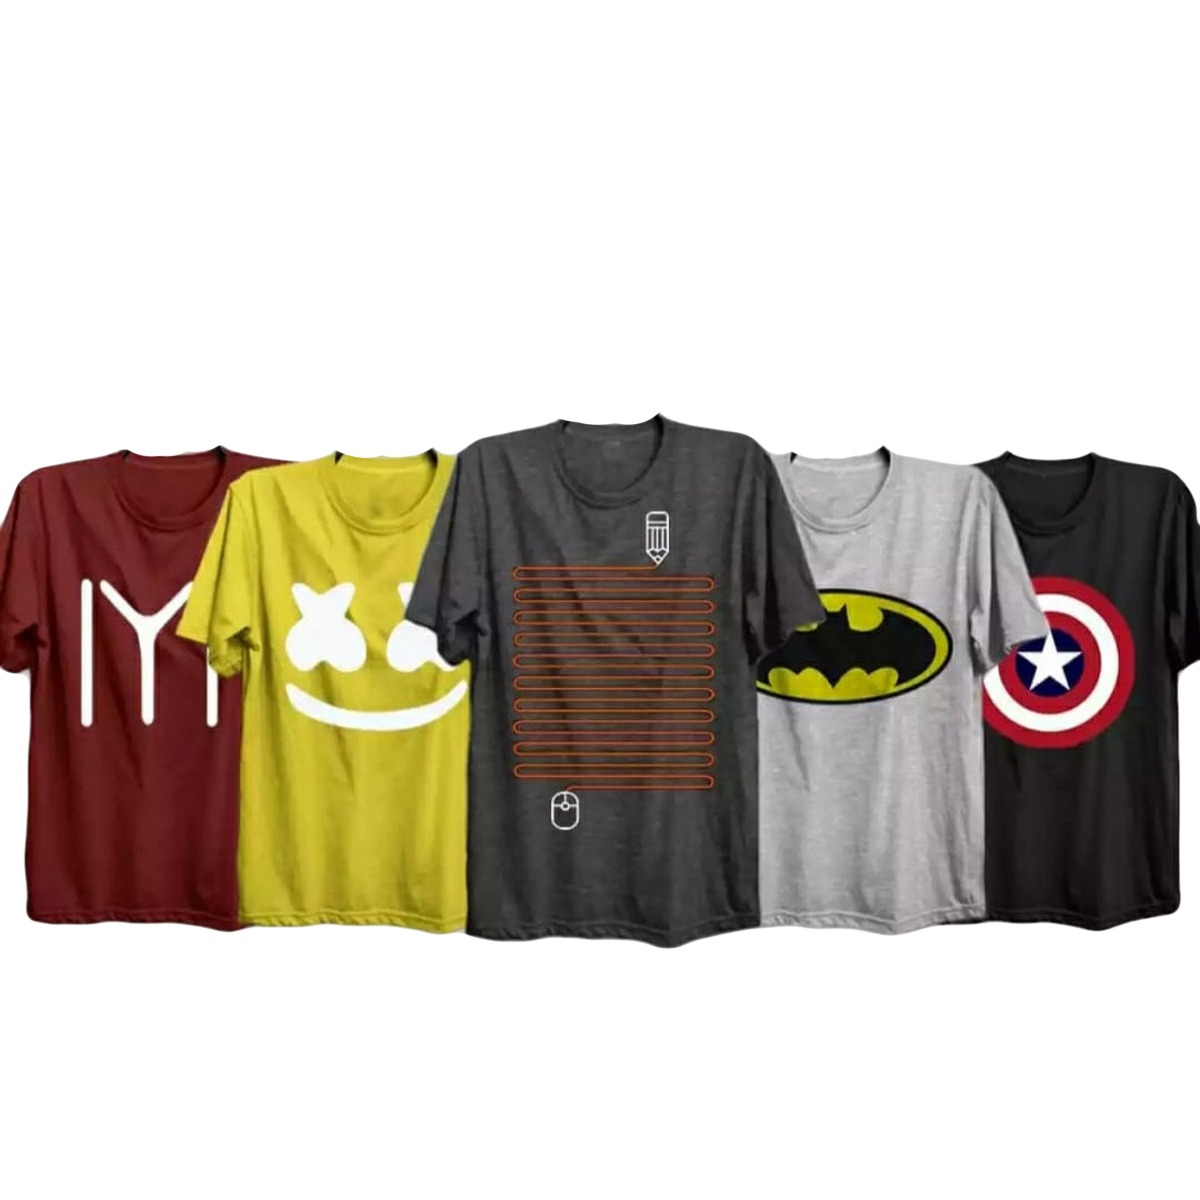 The Vintage Clothing Pack of 5 casual printed premium T-shirts